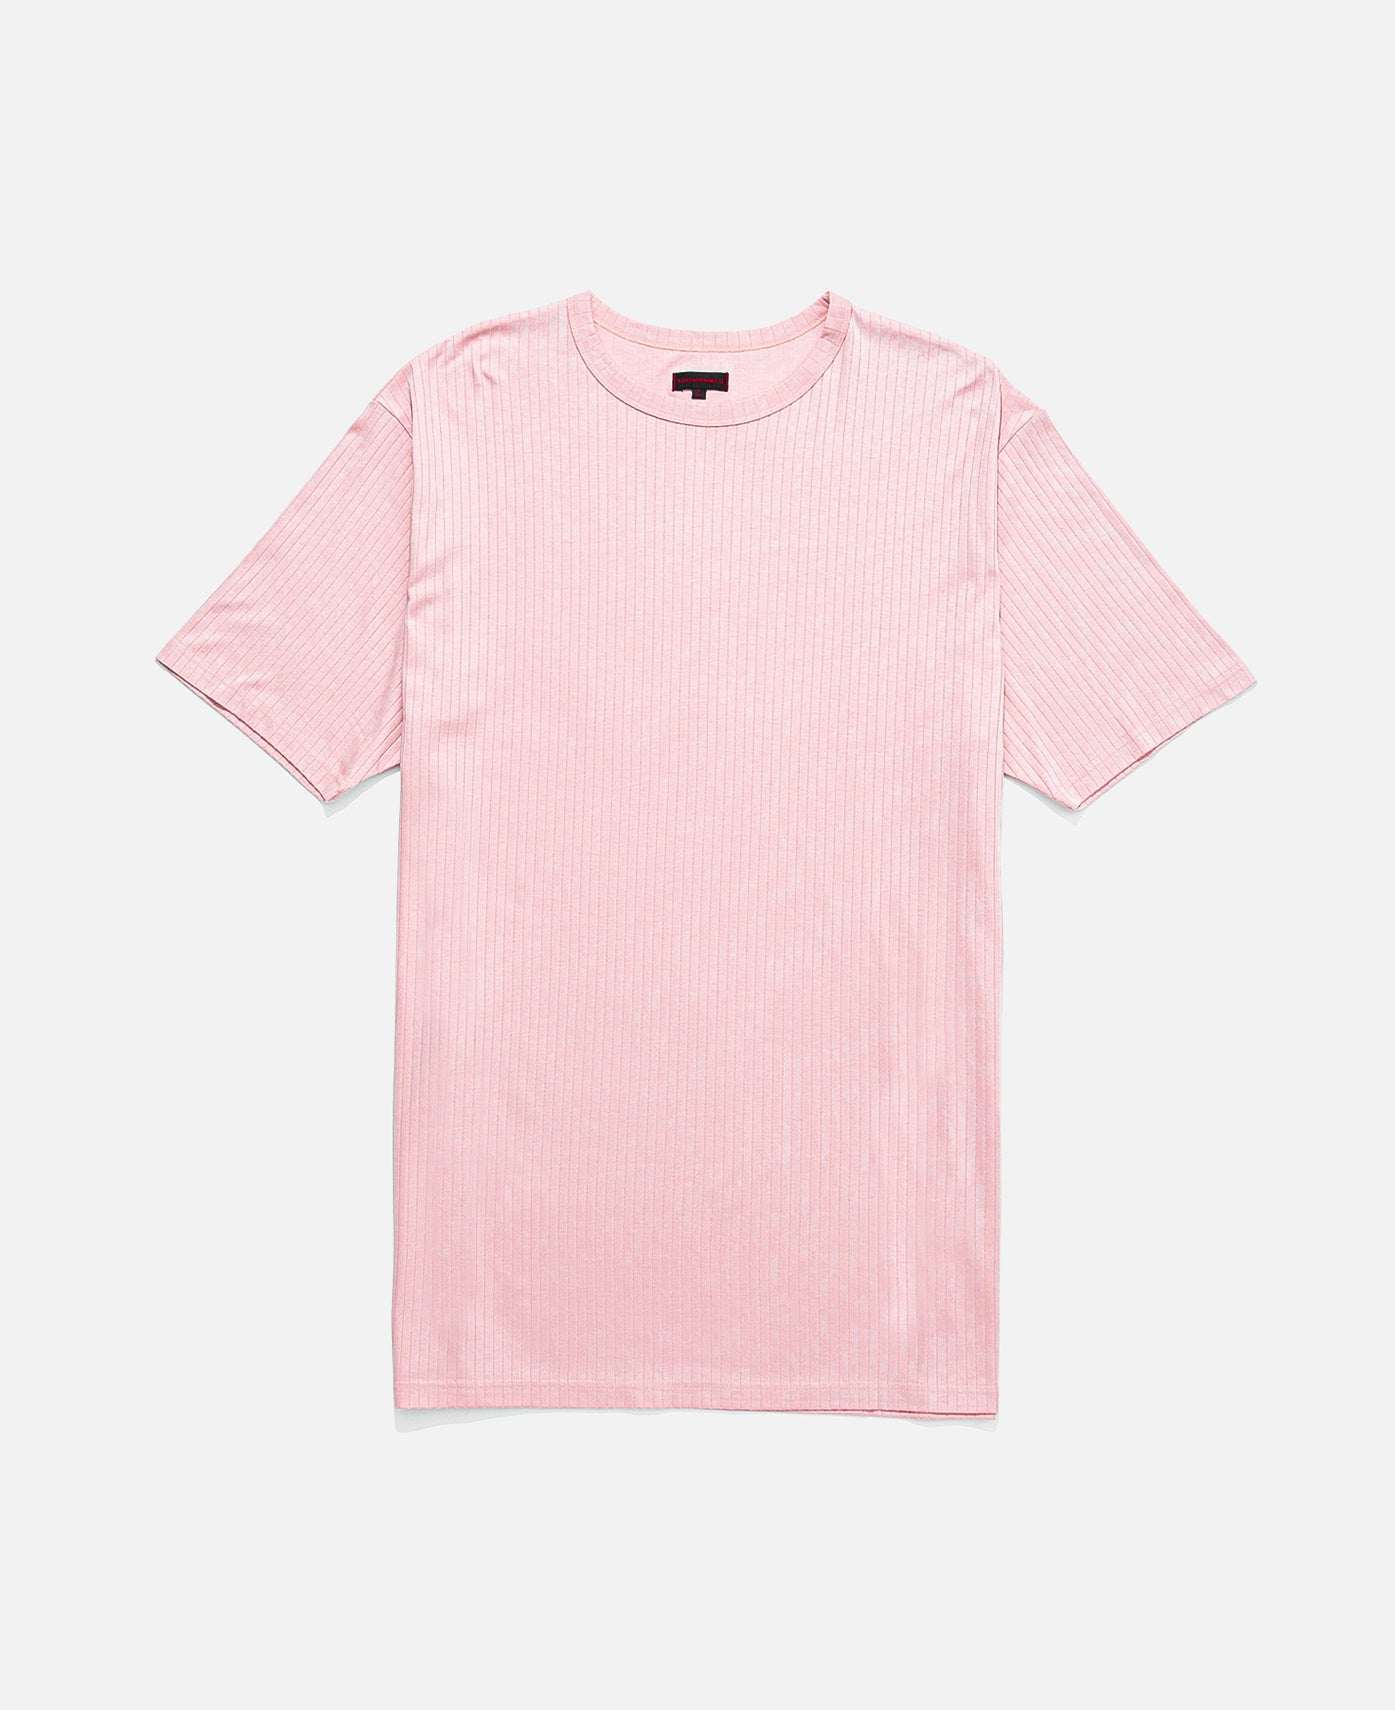 UNDERLAY RIBBED TEE LONG LENGTH, PINK